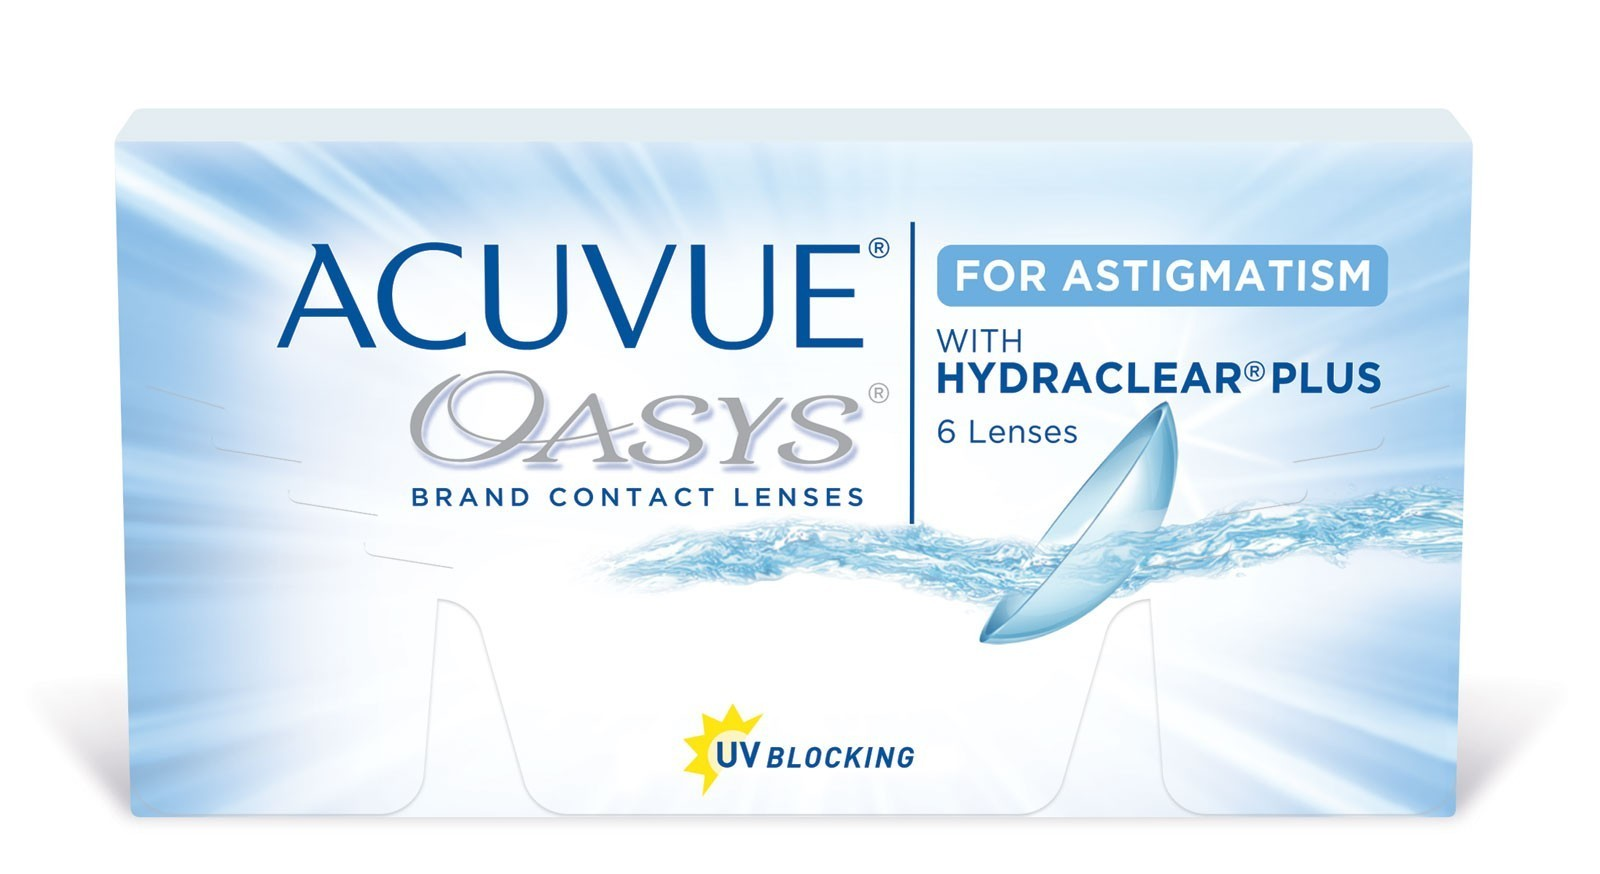 acuvue oasys for astigmatism acuvue. Black Bedroom Furniture Sets. Home Design Ideas